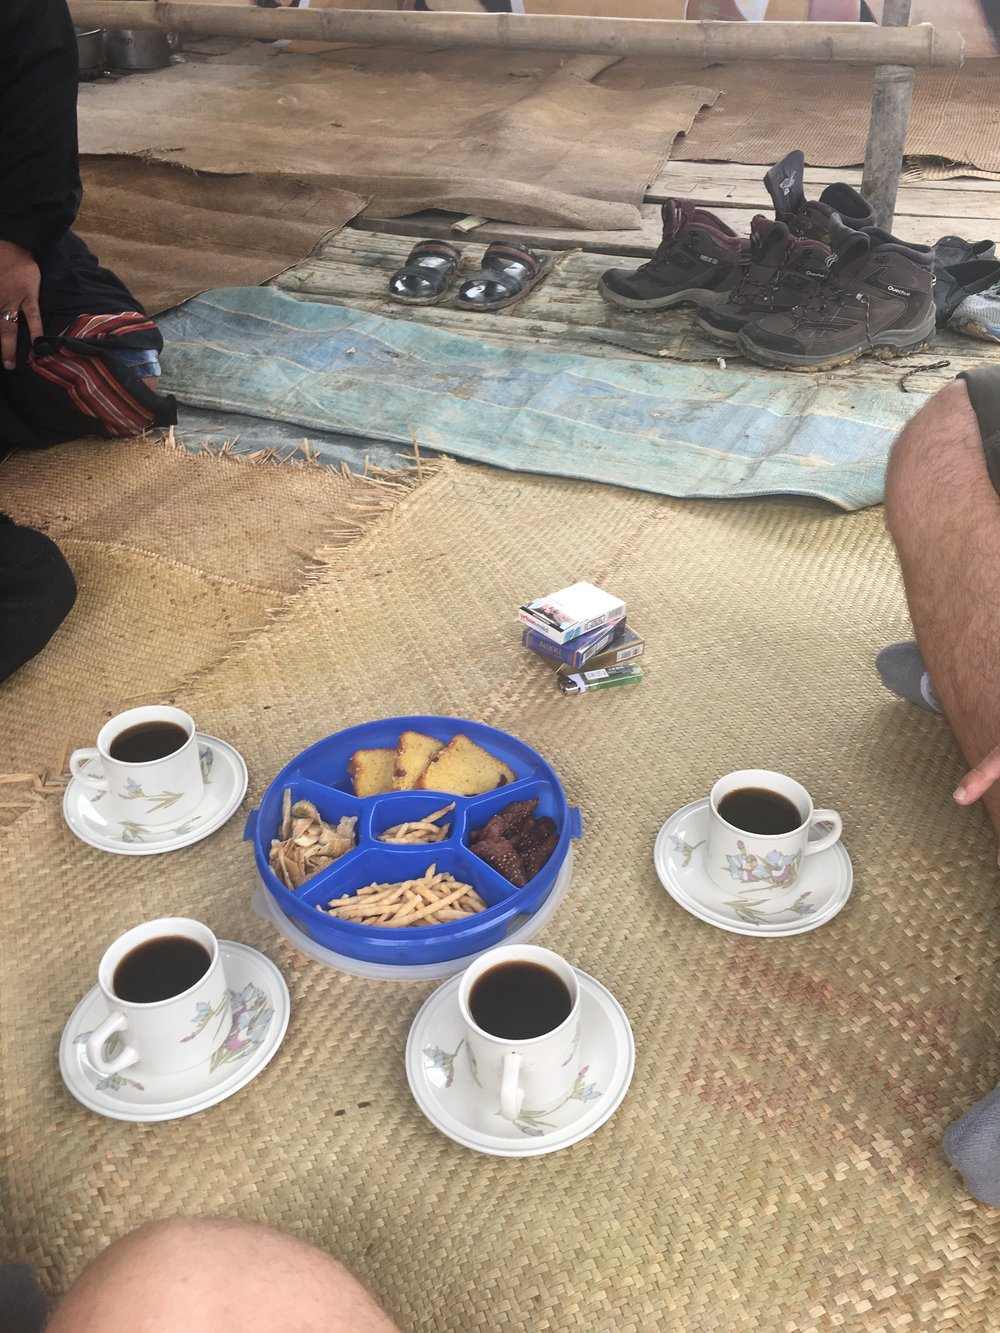 First course: Coffee, crackers, and bread